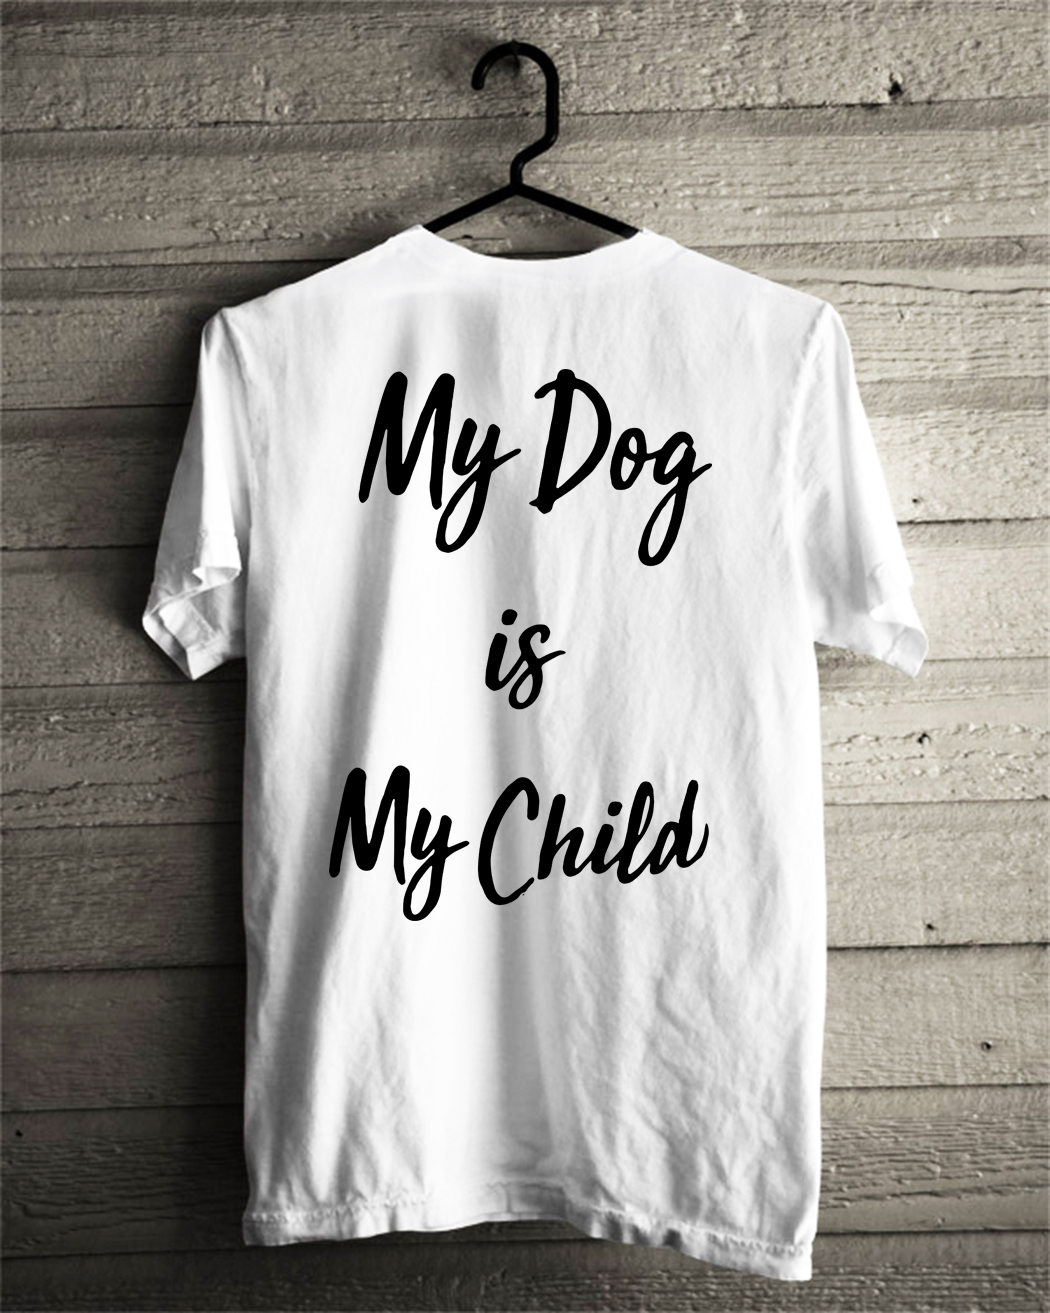 My dog is my child shirt